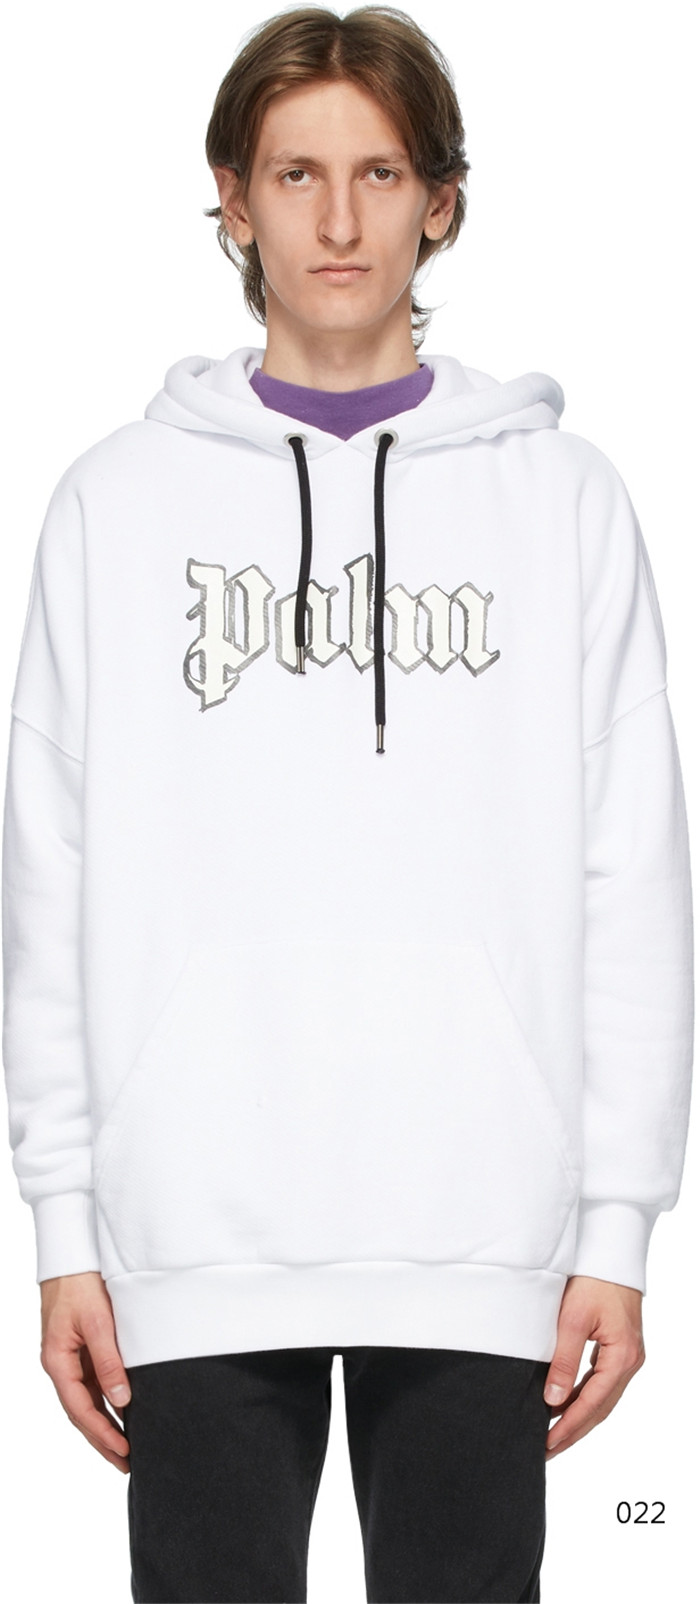 Palm Angles Men's Hoodies 259